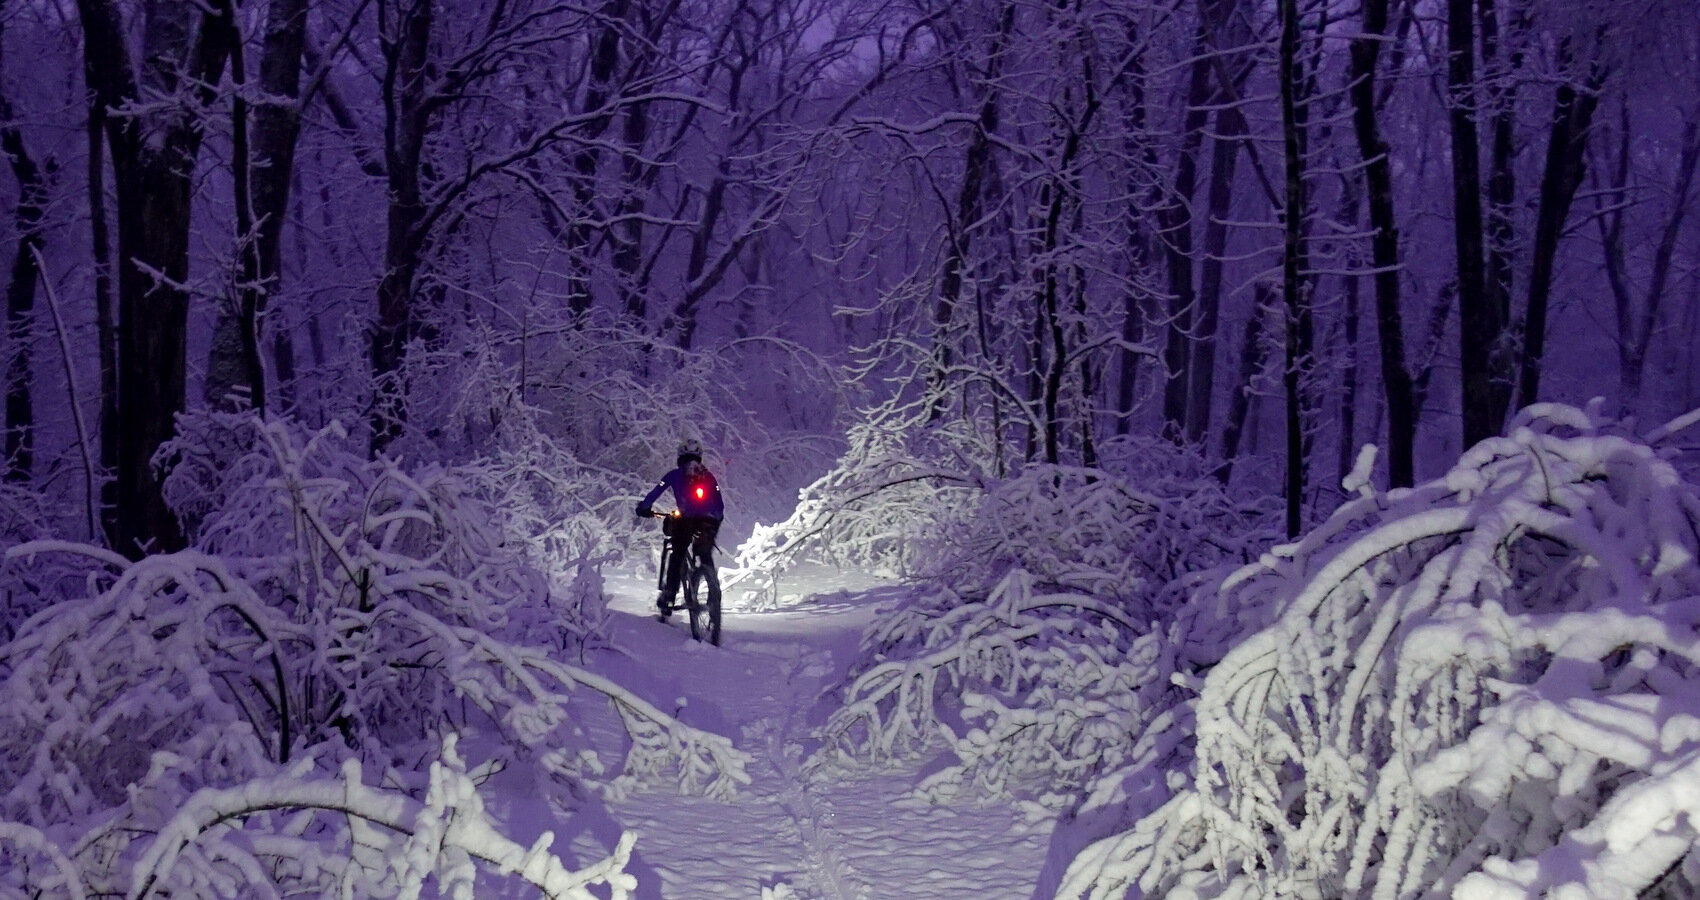 At 6am after an evening snowfall, the woods were spectacular to ride.